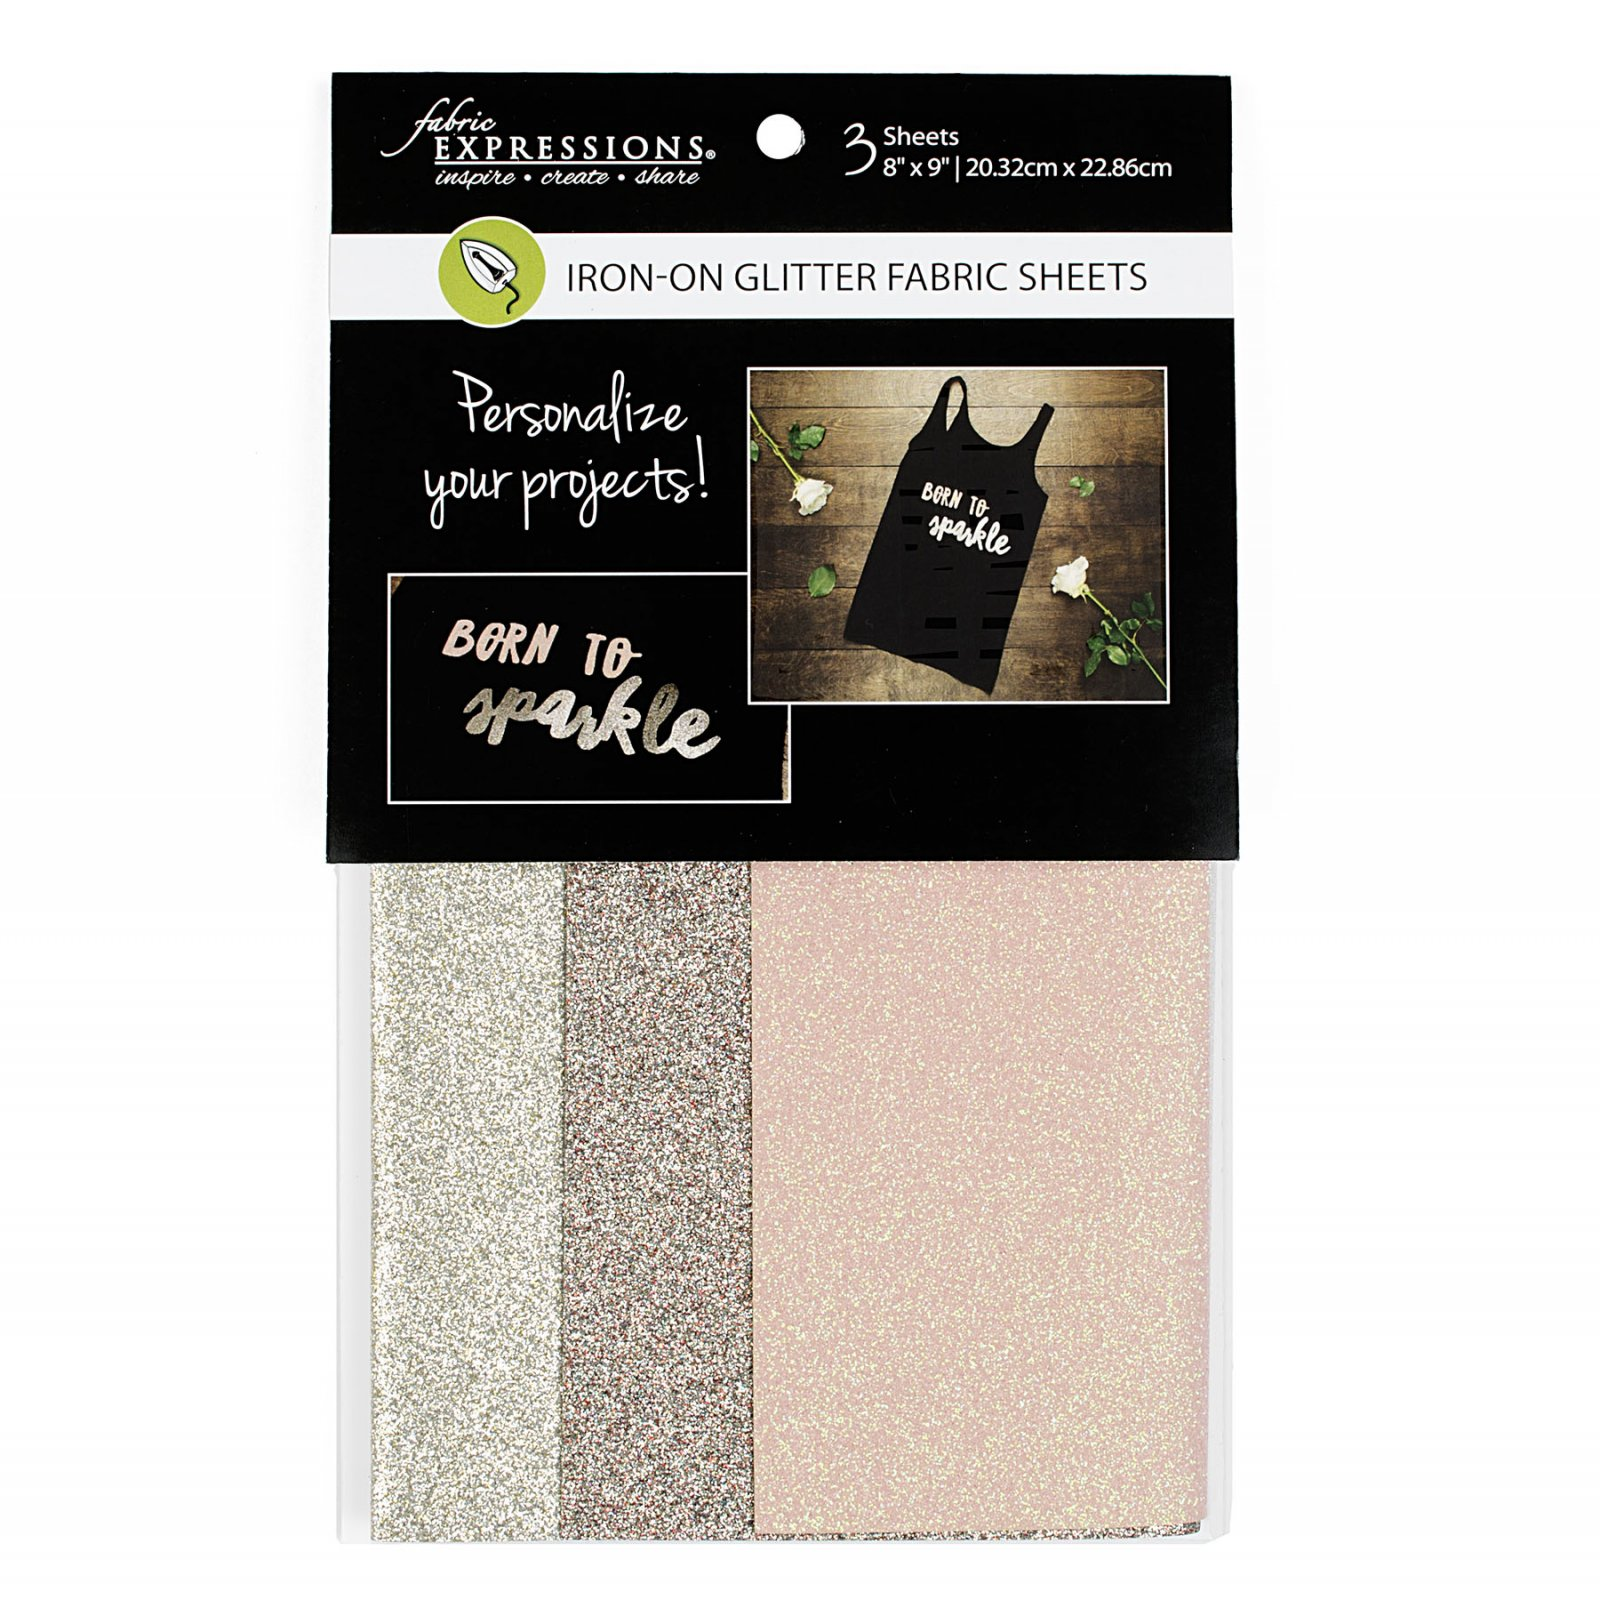 Fabric Expressions<br>6pc Iron-on Fabric Sheets - 8 x 9<br>Glitter - Fashion<br>FE-FS-SP1-GLT3PC